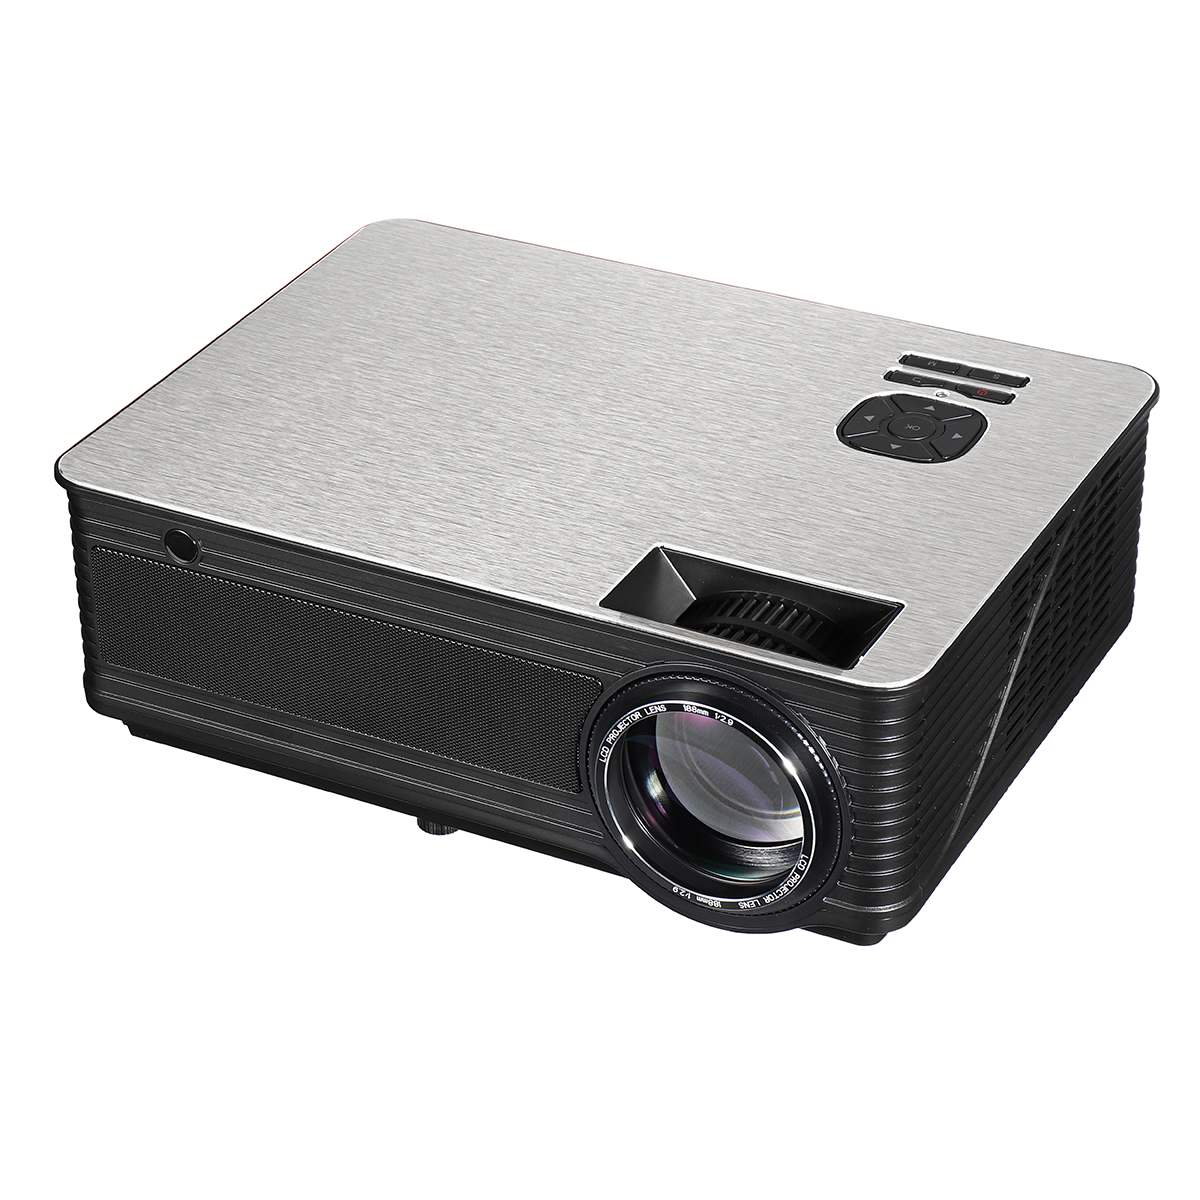 LEORY  M5 LED Portable Projector 5.8 Inch LCD Projector 4500 Lumen 1280*800 Support 1080P TV Home TheaterLEORY  M5 LED Portable Projector 5.8 Inch LCD Projector 4500 Lumen 1280*800 Support 1080P TV Home Theater